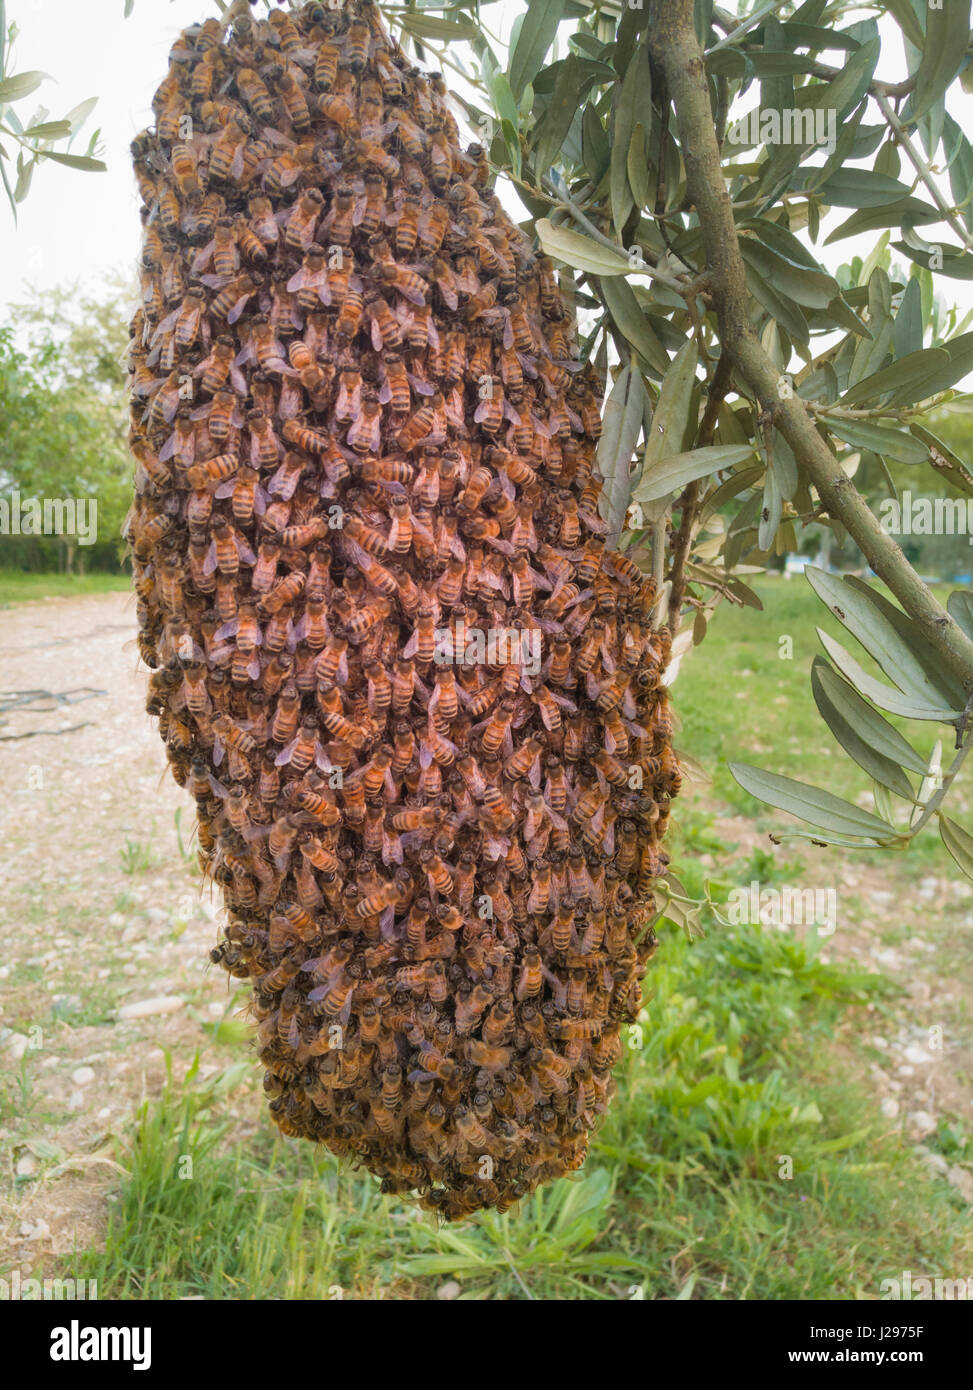 Swarm of bees in a olive tree - Stock Image